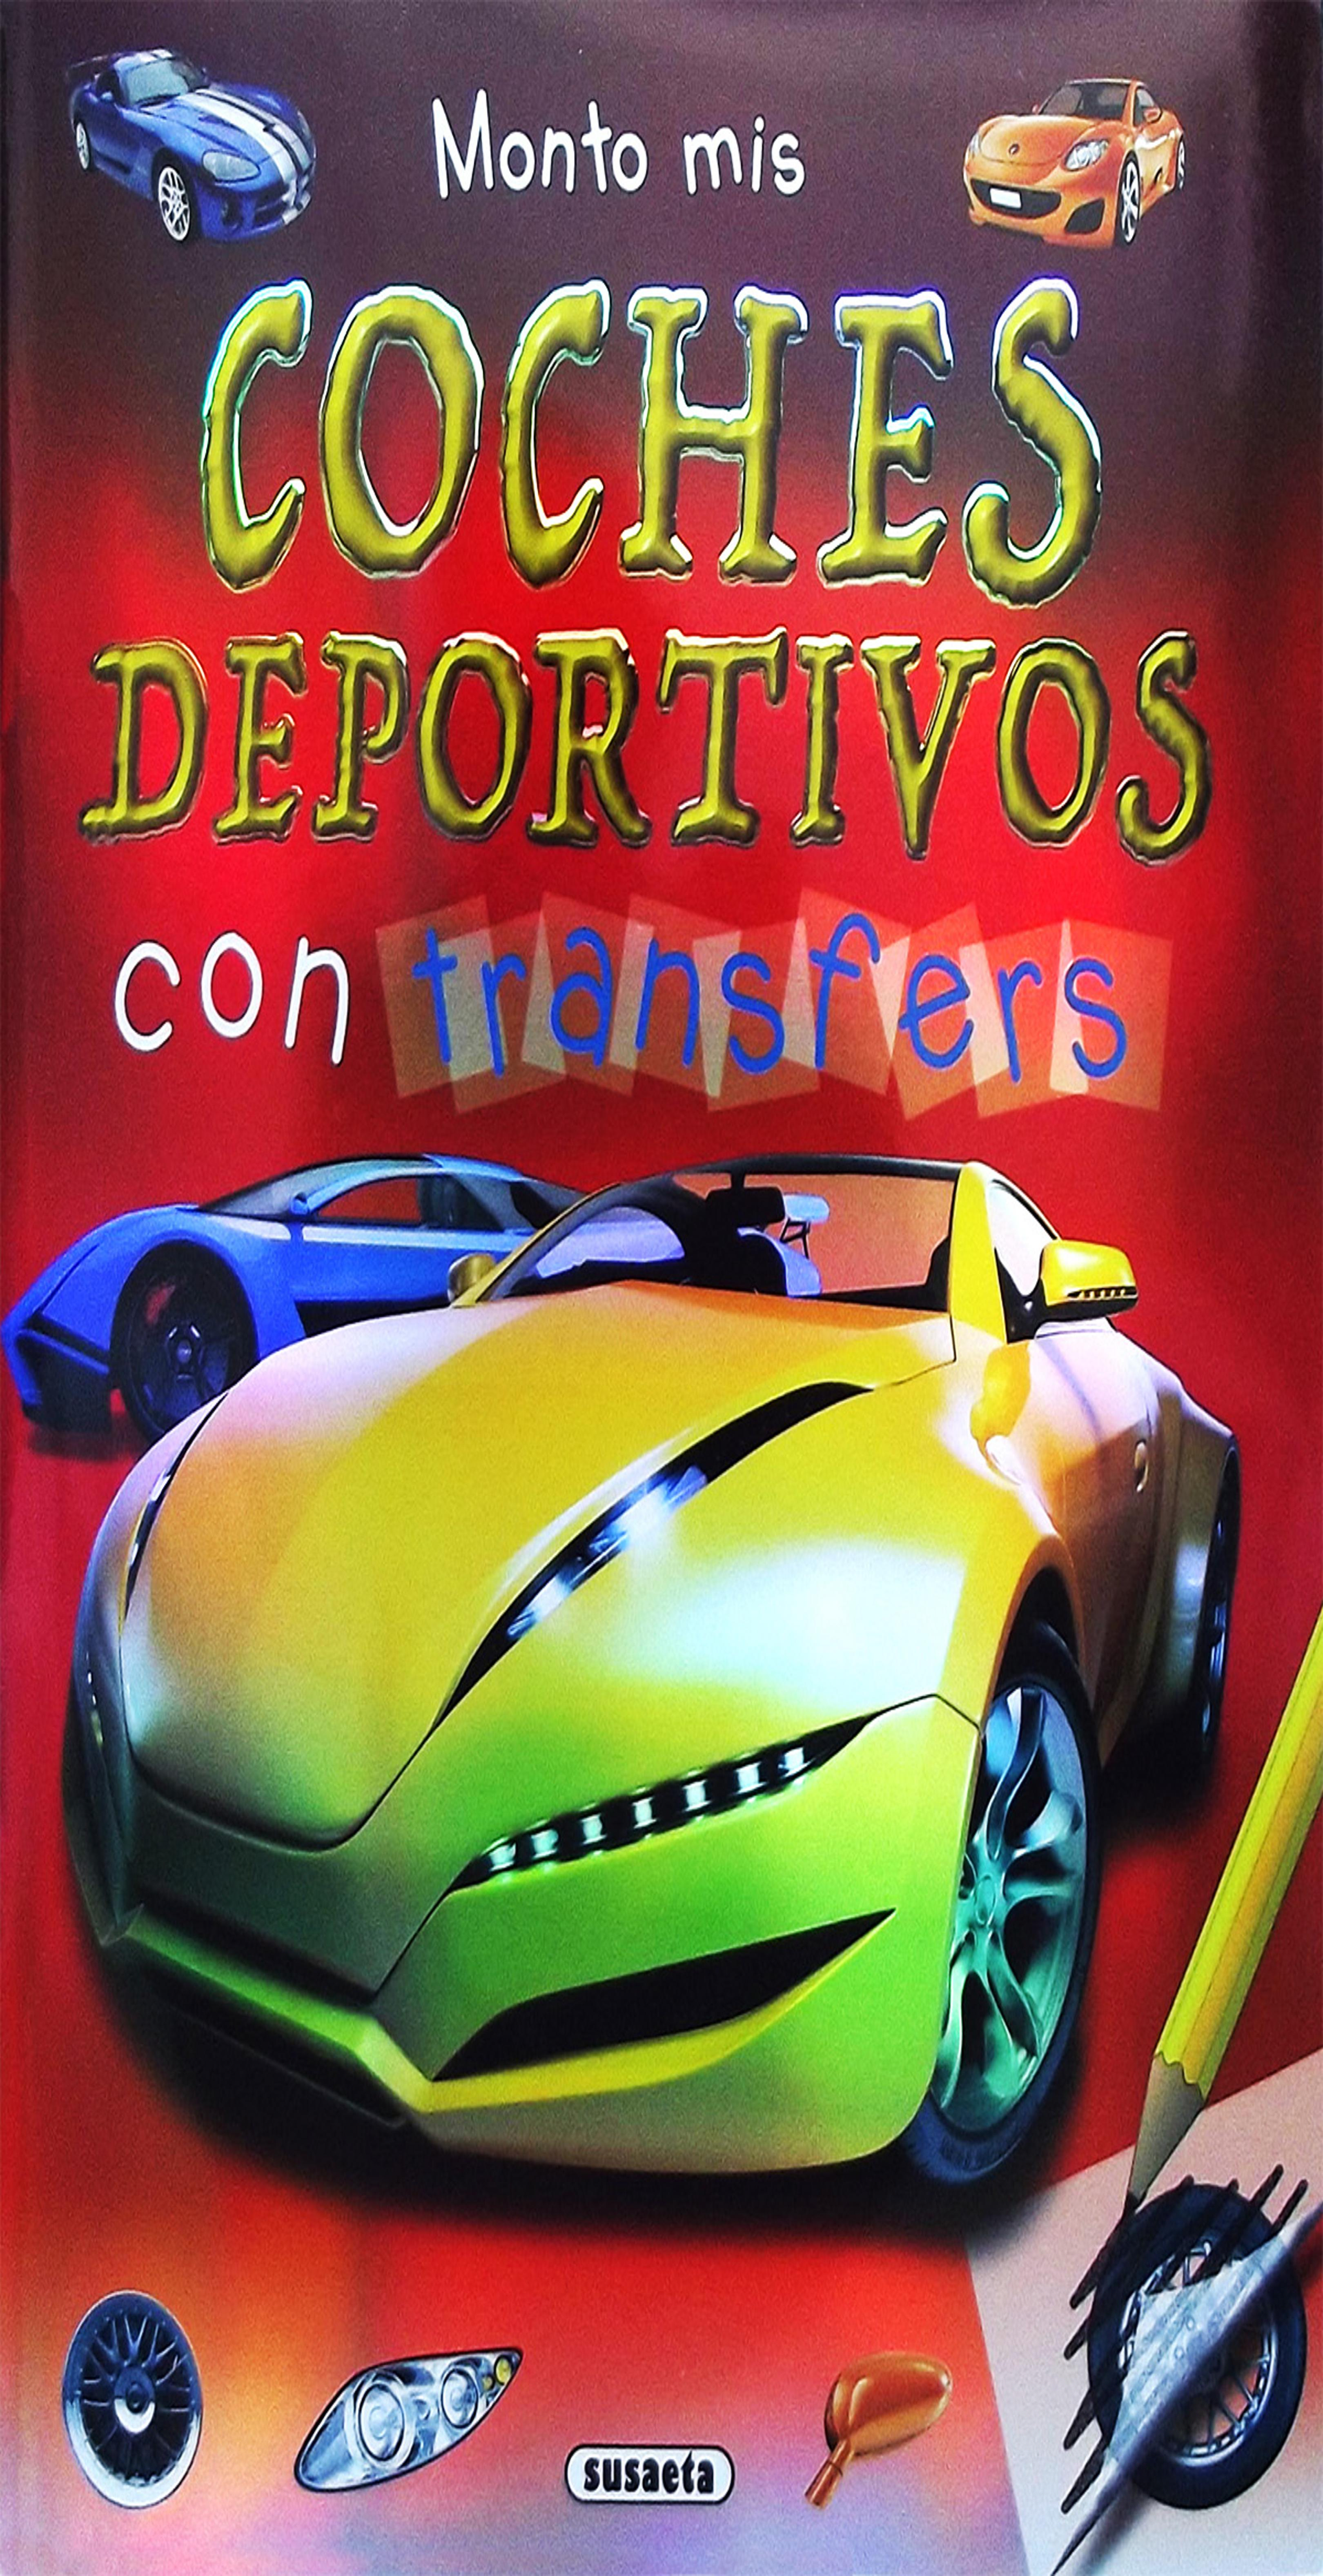 MONTO MIS COCHES DEPORTIVOS